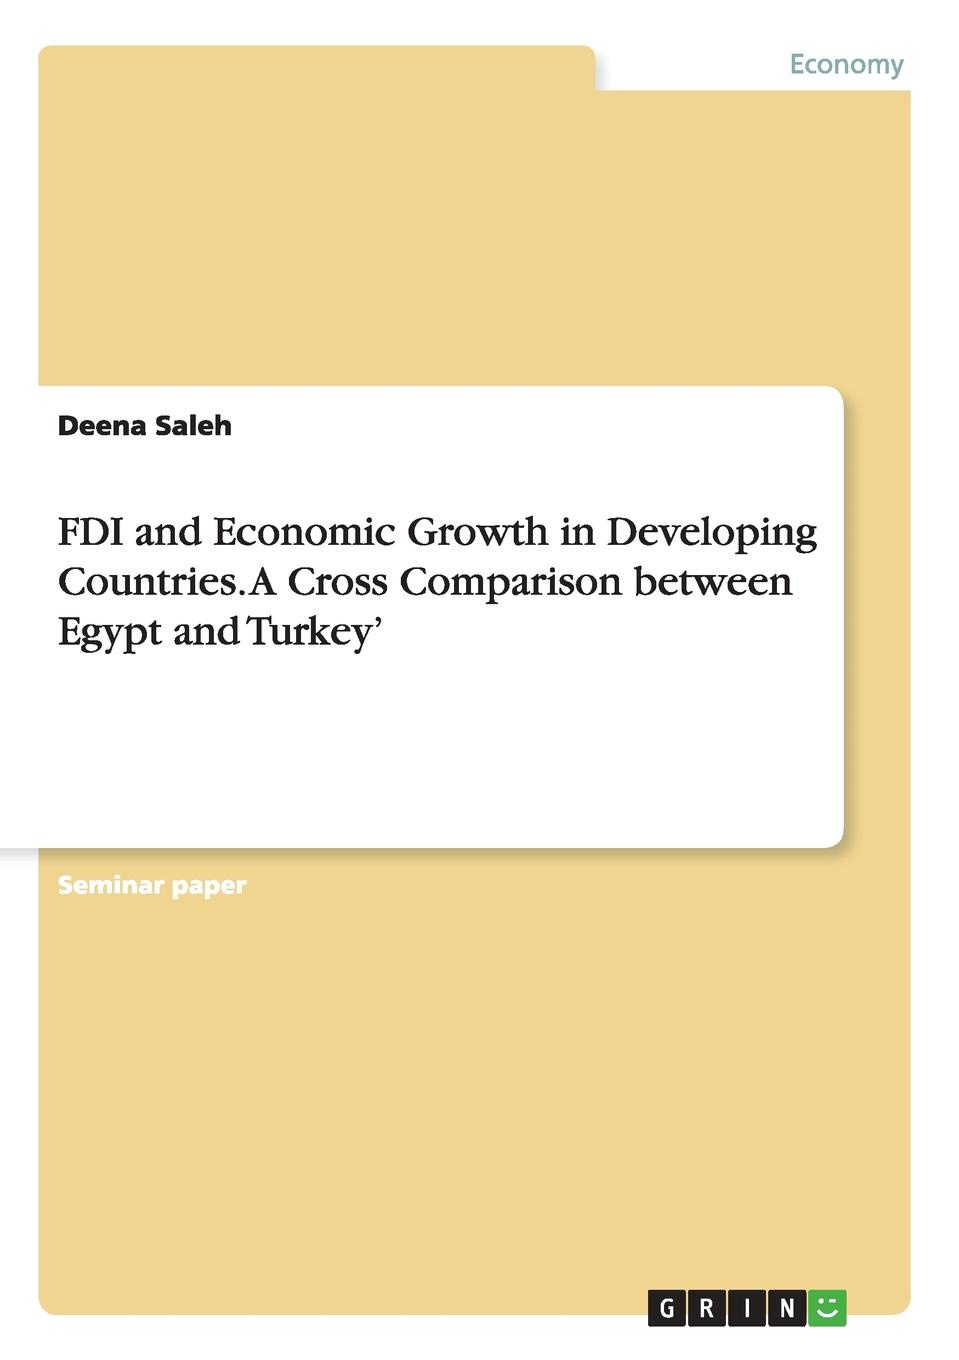 Deena Saleh FDI and Economic Growth in Developing Countries. A Cross Comparison between Egypt and Turkey. кастрюля с крышкой 5 6 л miolla 1005046u